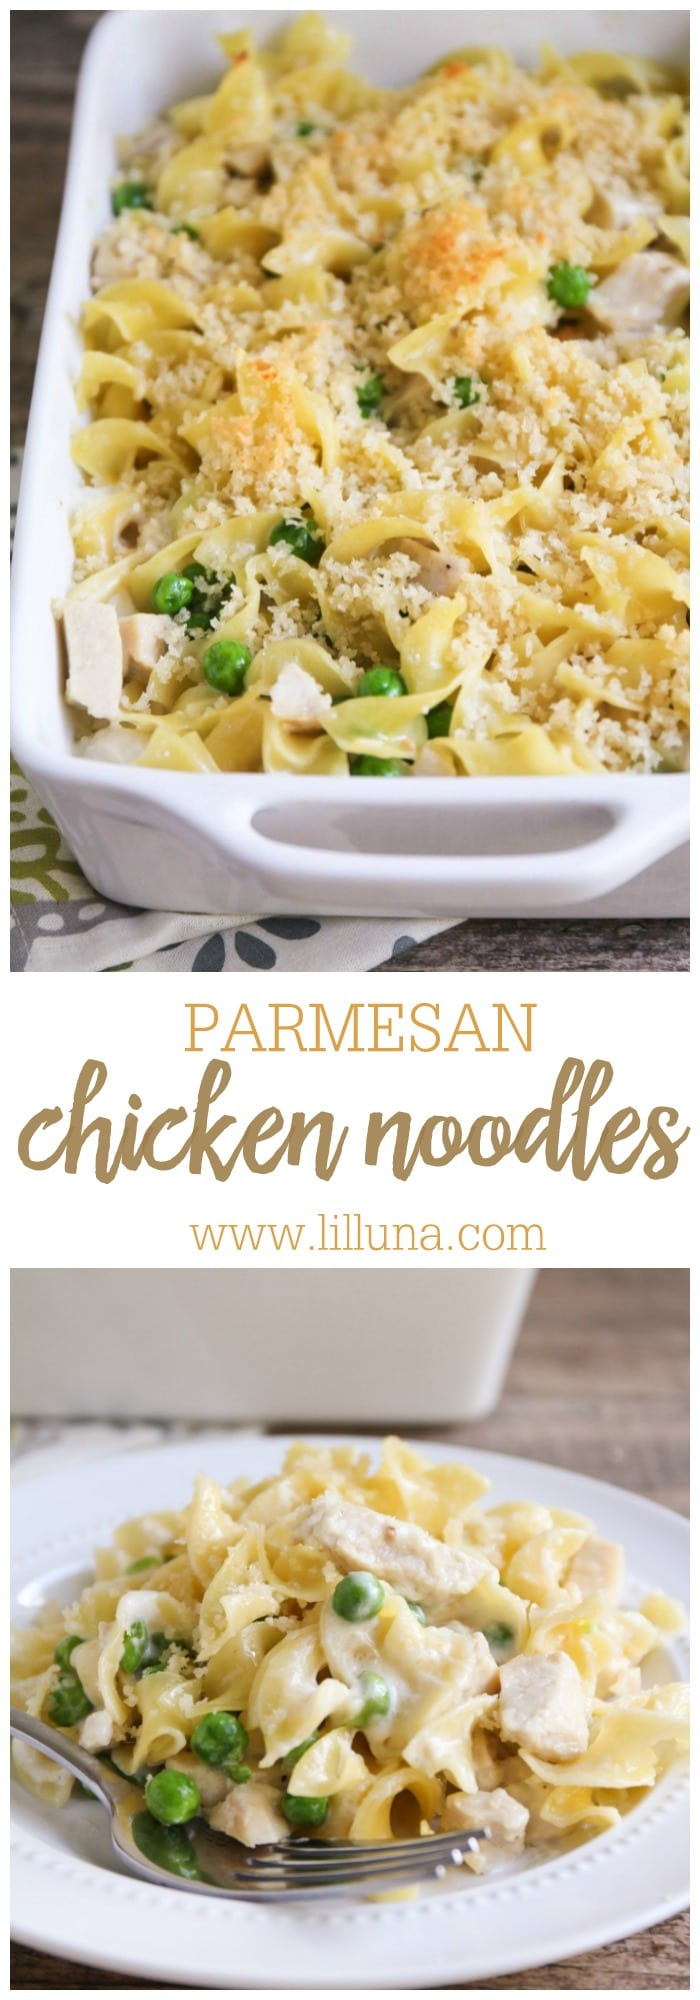 Garlic Parmesan Chicken and Noodles recipe { lilluna.com } So delicious and recipe includes egg noodles, peas, chicken, panko, and parmesan in a creamy sauce!